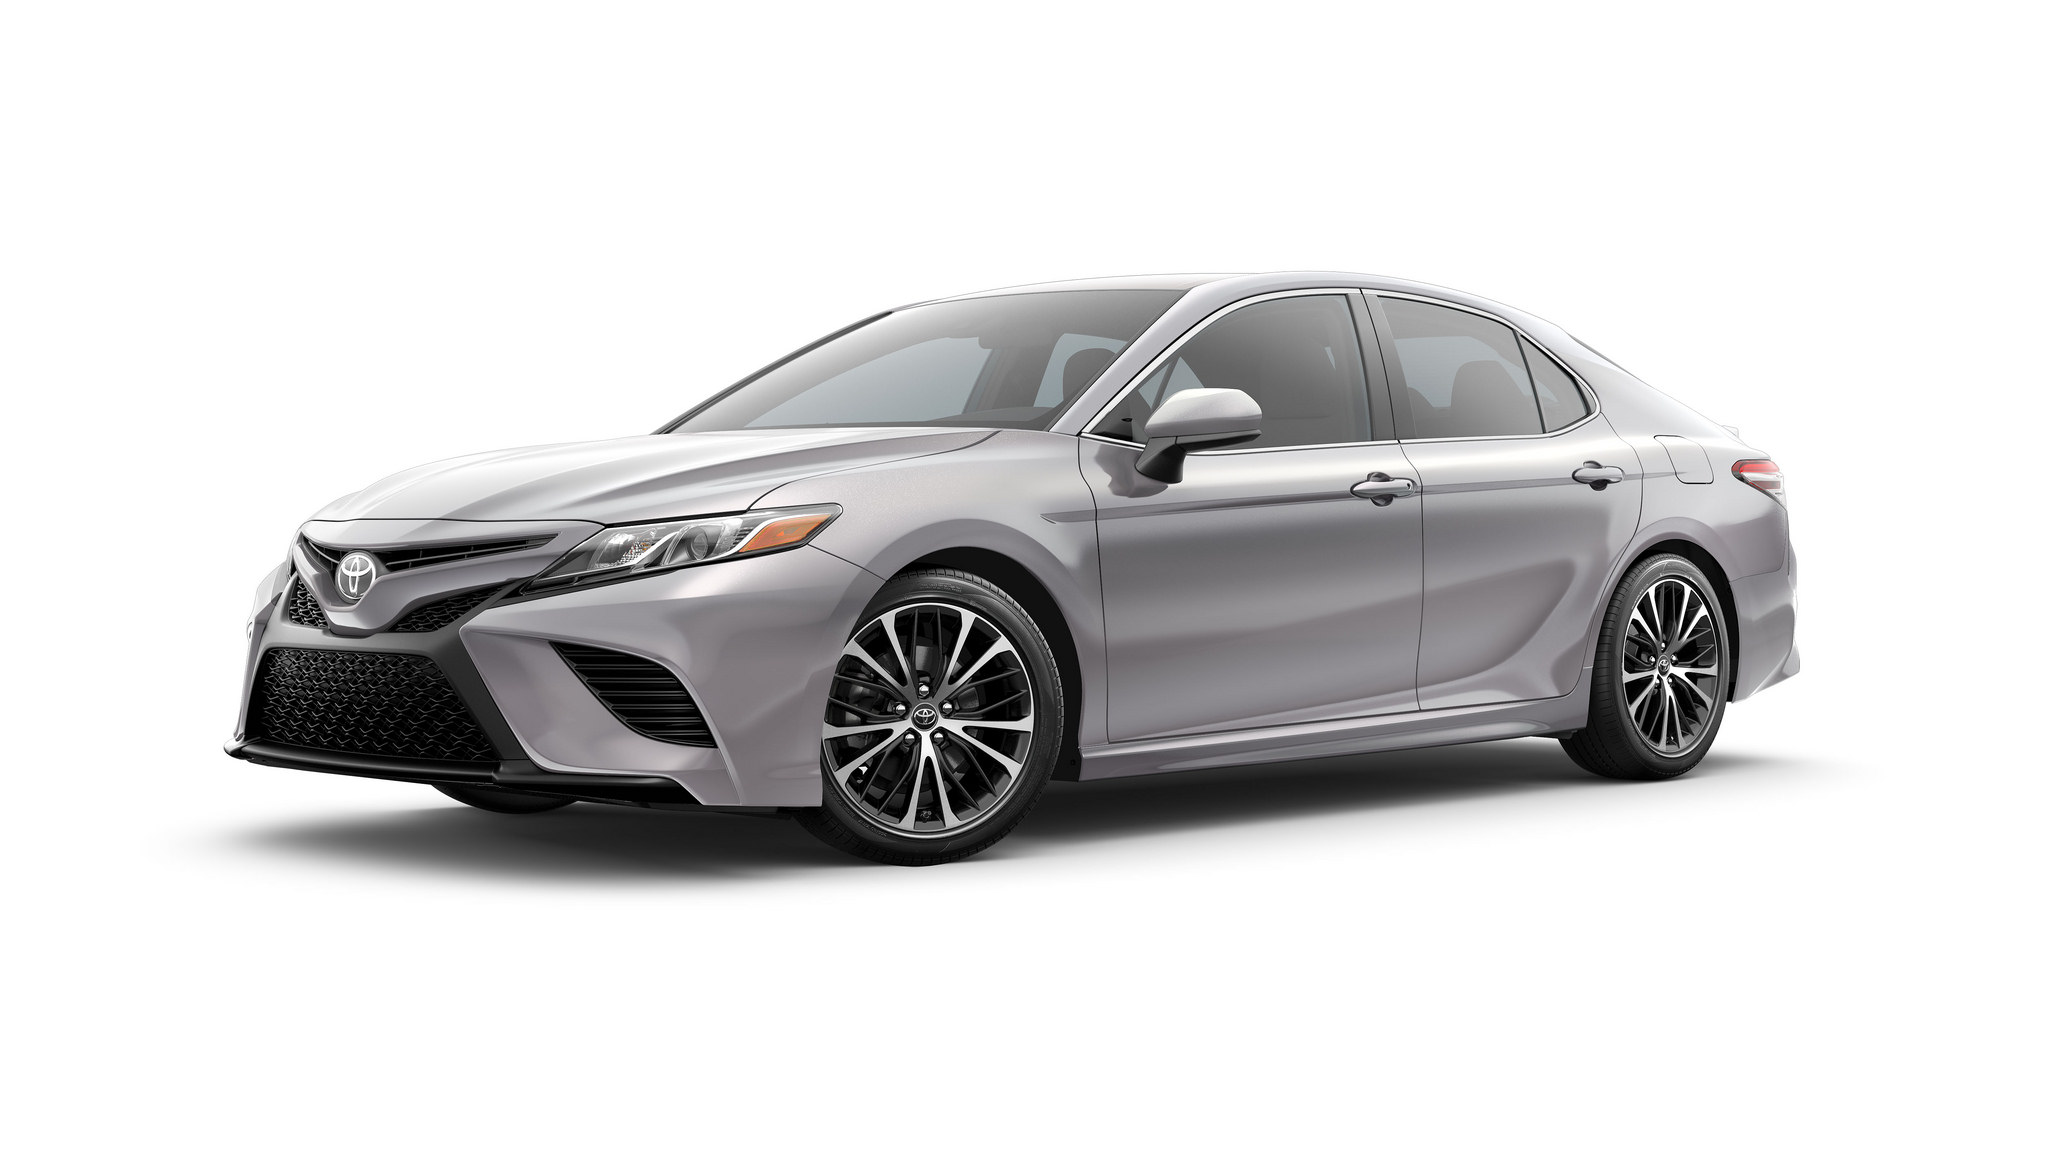 2018 Toyota Camry Serving the Lehigh Valley | Krause Toyota - Breinigsville, PA